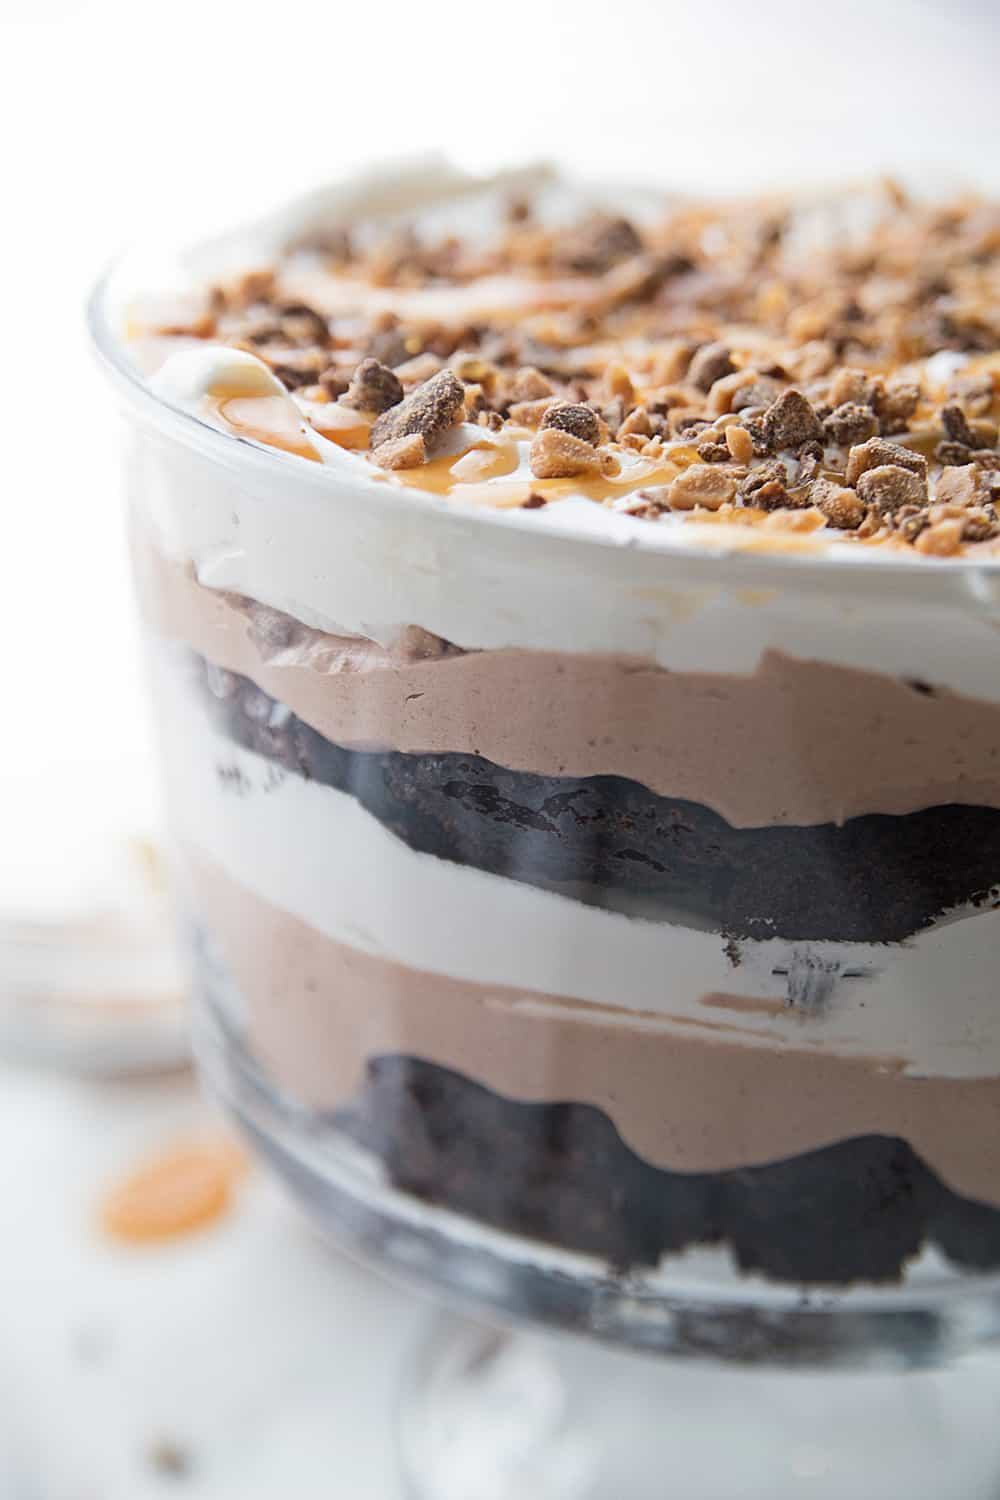 Chocolate Brownie Trifle - Chocolate brownie trifle features layers of rich, chocolate brownies, fudge pudding, whipped topping, toffee, and caramel. What's not to love? #trifle #brownie #dessert #halfscratched #chocolatetrifle #brownietrifle #sweet #baking